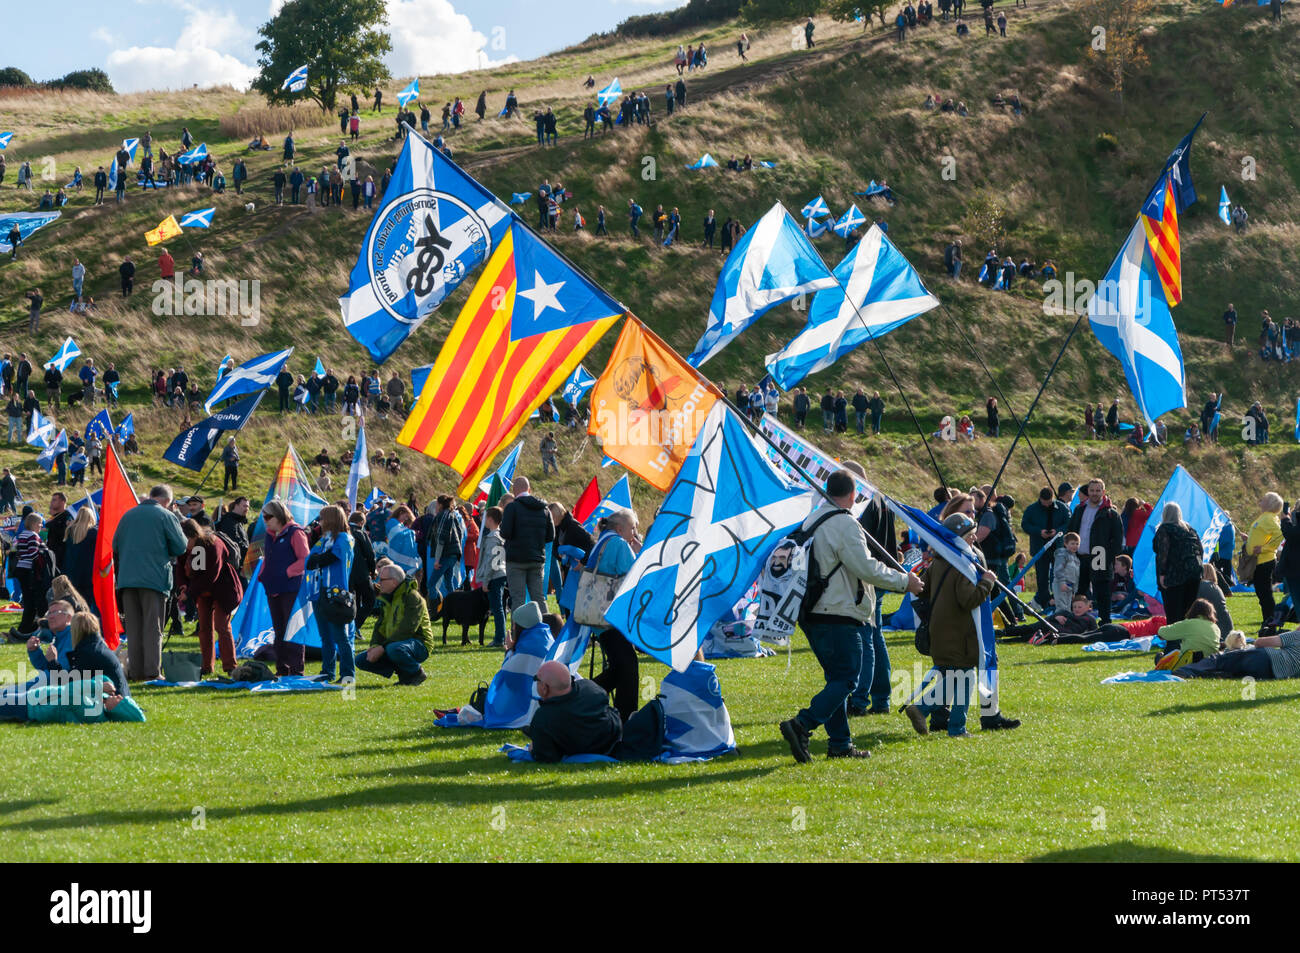 edinburgh-scotland-uk-6th-october-2018-c